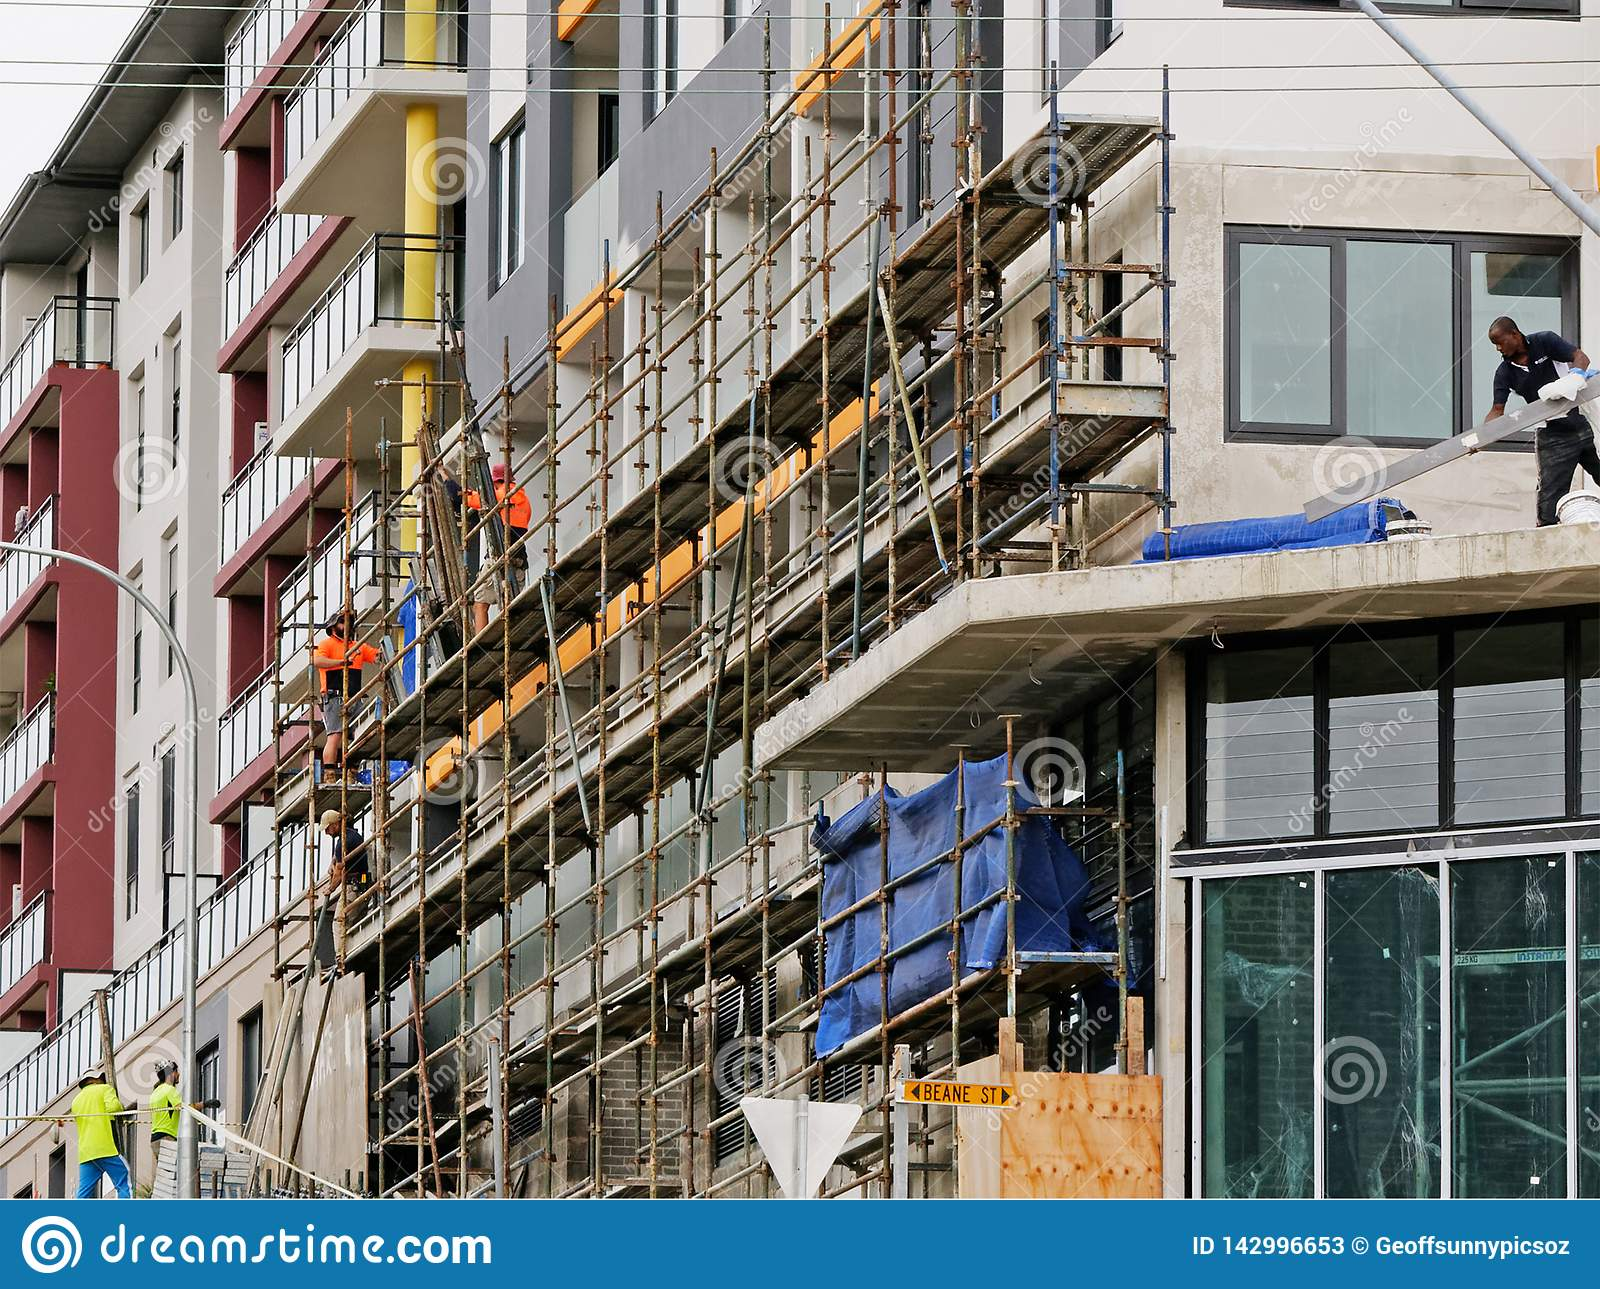 Construction Workers on site at 47 Beane St. Gosford. March, 2019. Building update ed224